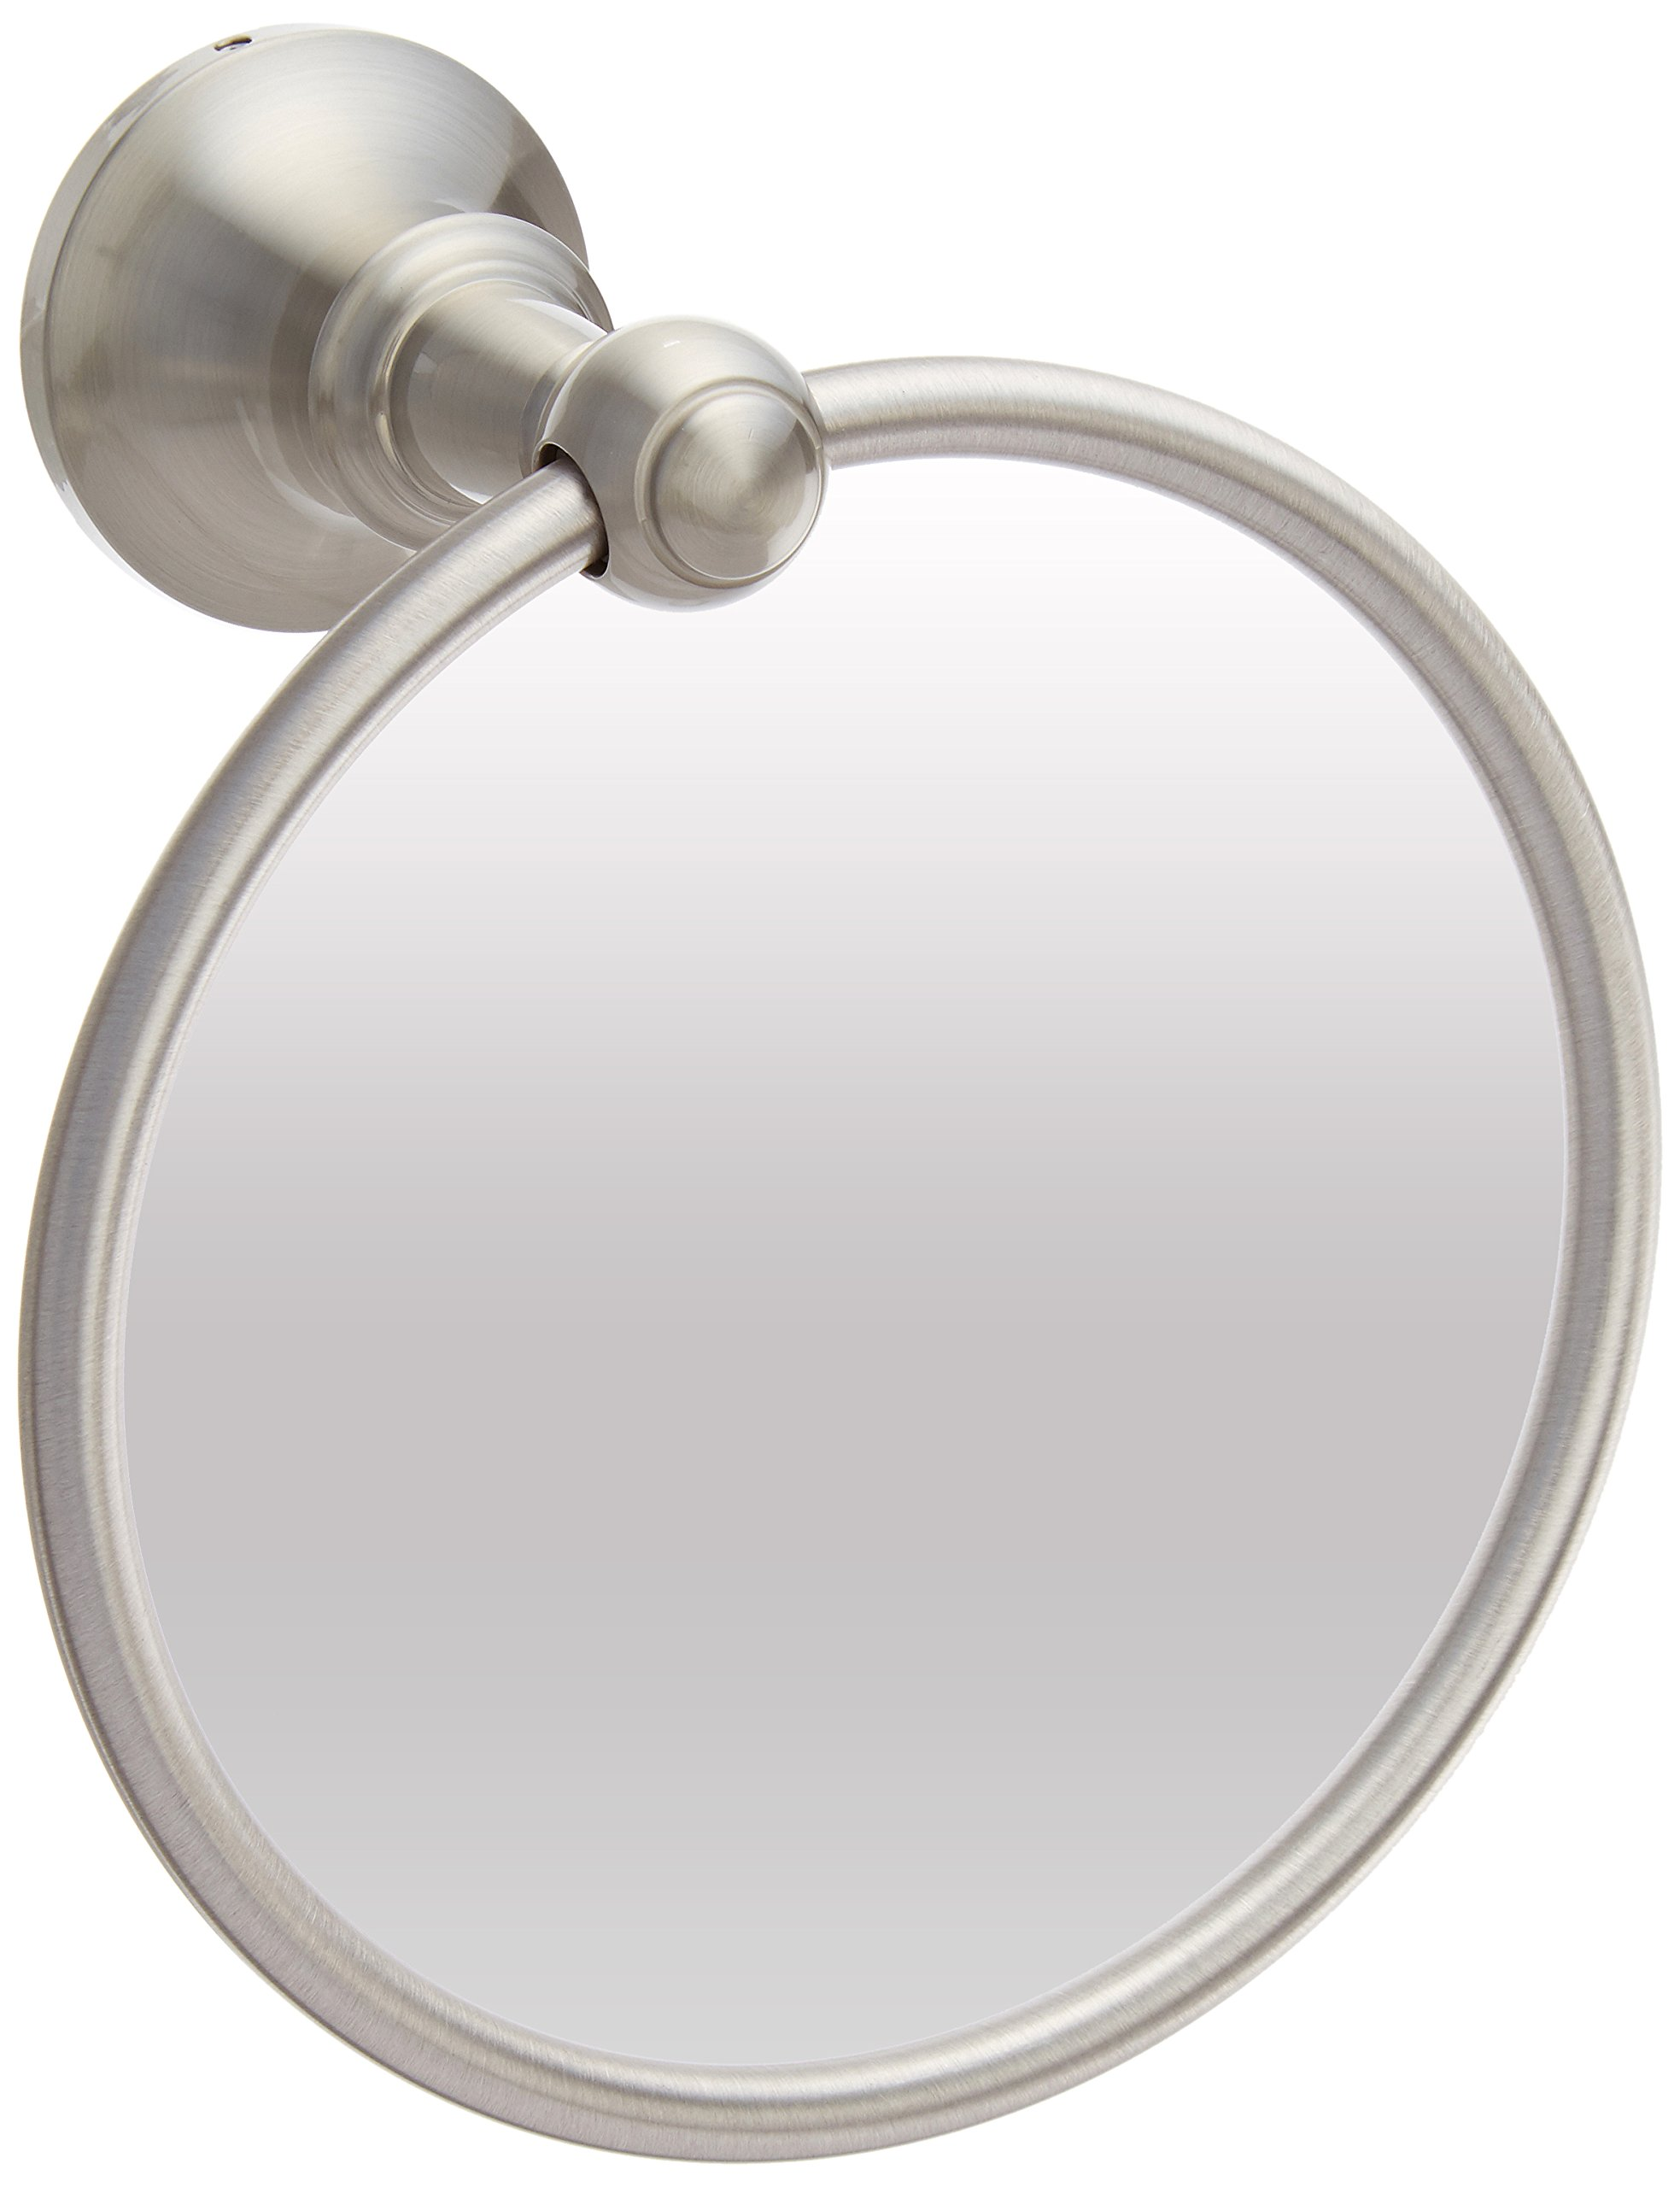 Moen DN4486BN Vale Towel Ring, Brushed Nickel by Moen